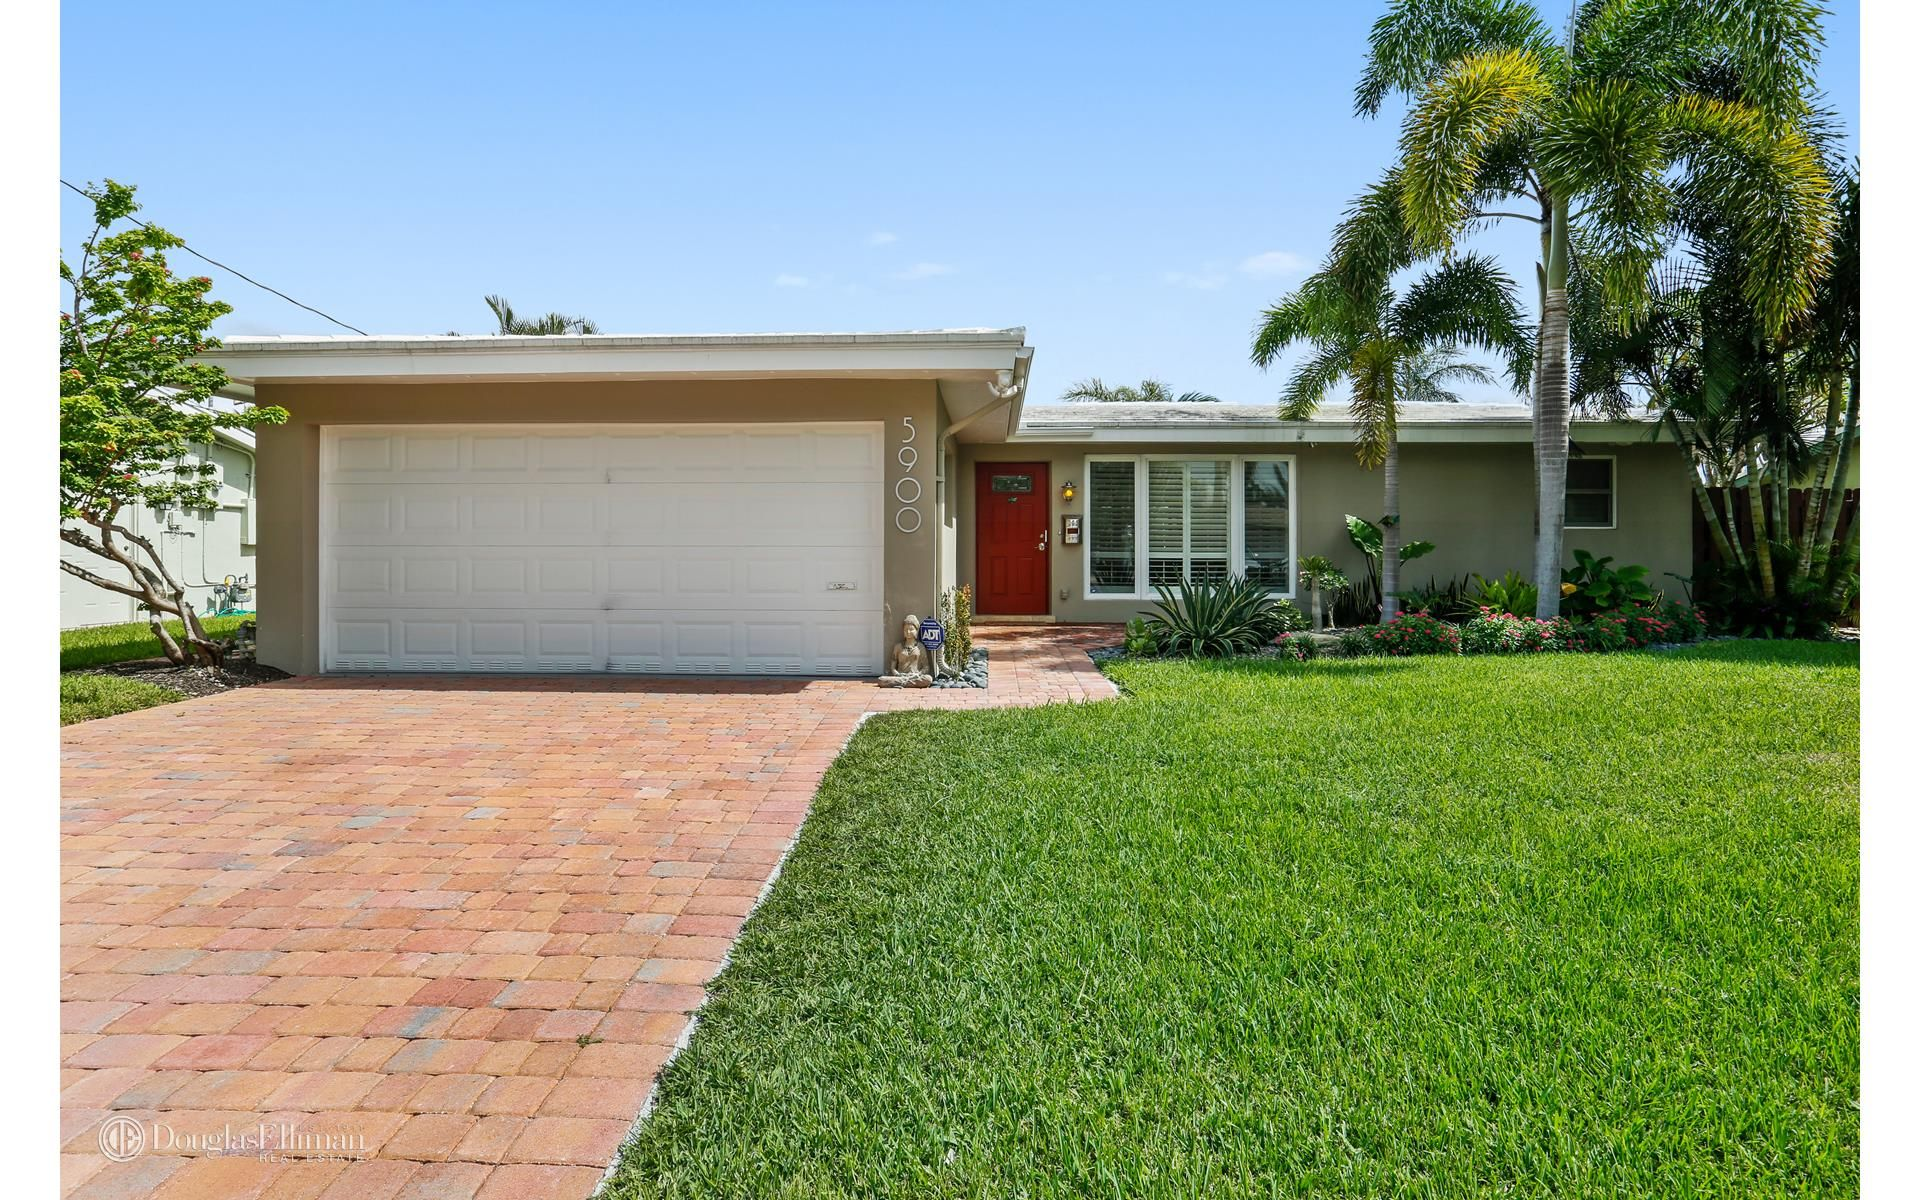 5900 NE 14th Way, Fort Lauderdale, FL 33334 - Estimate and Home ...